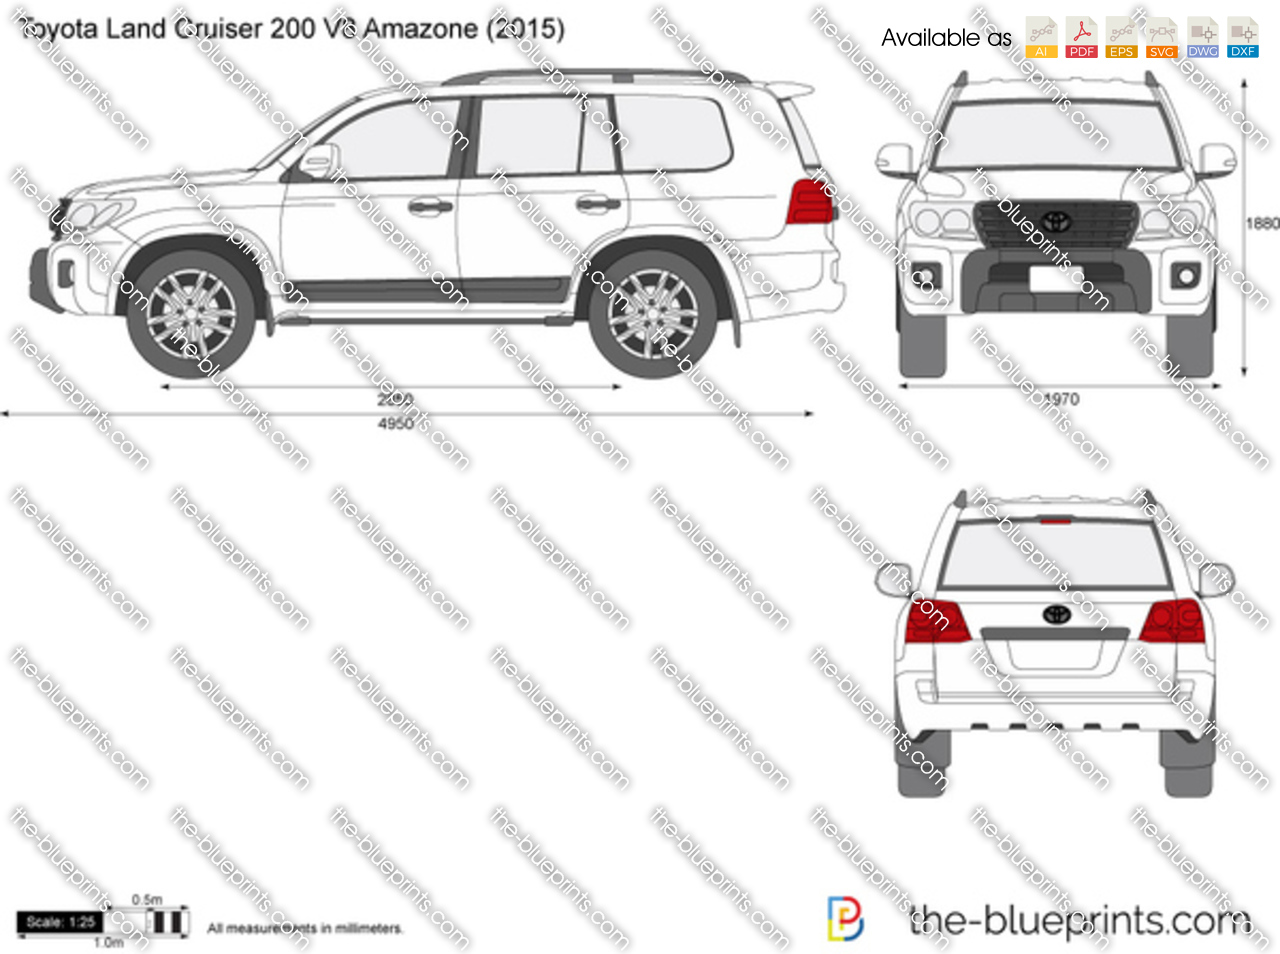 toyota land cruiser 200 v8 amazone vector drawing